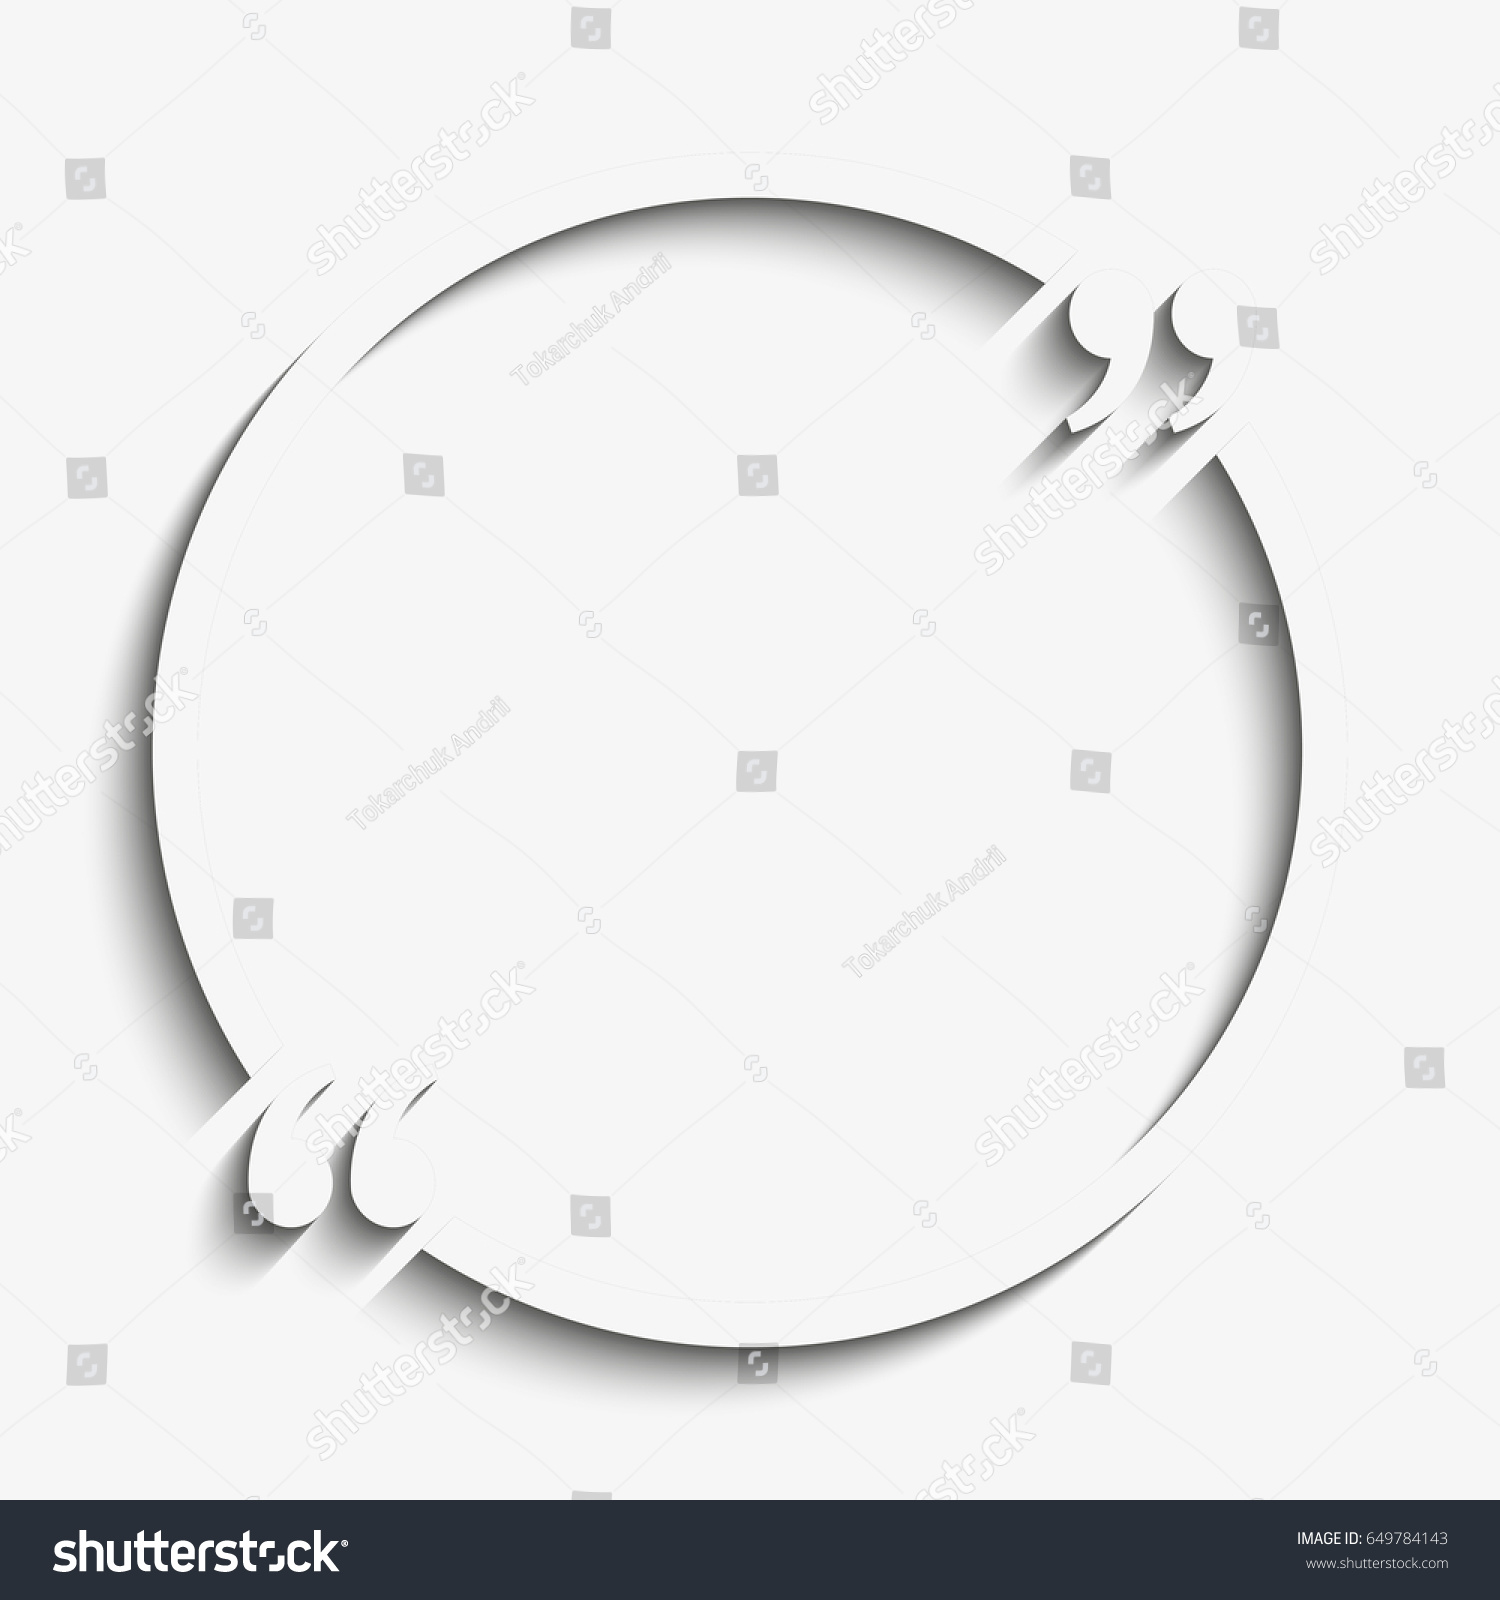 Paper Quote Blank Template Quote Circle Stock Illustration 649784143 ...